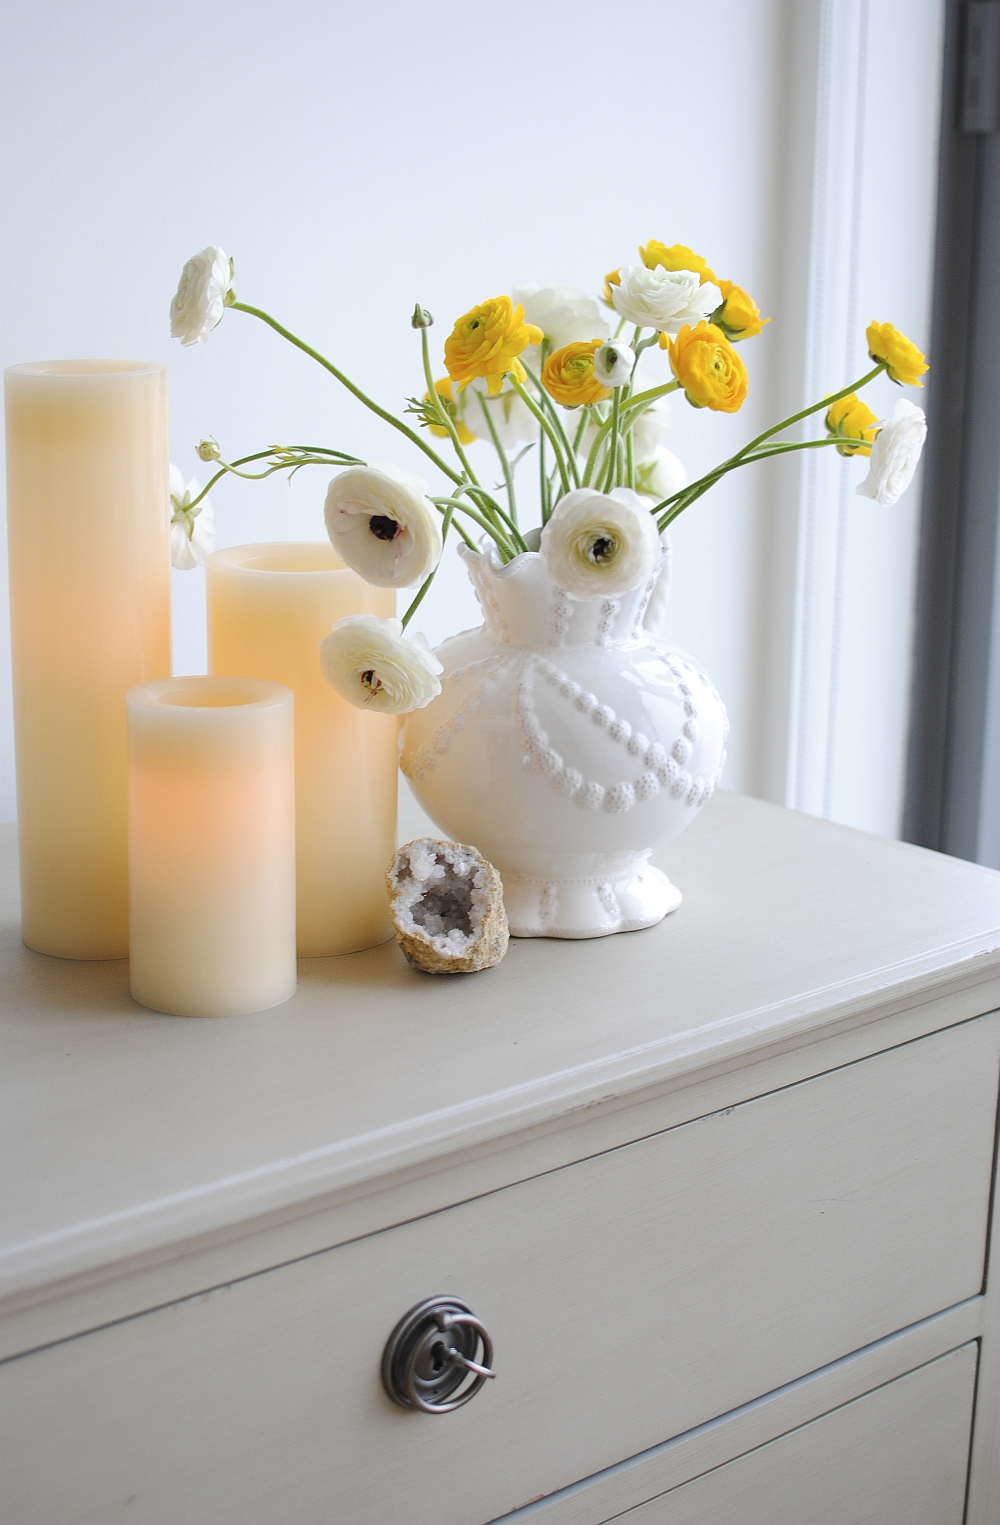 Wonderful way of decorating the sidetable with candles and flowers